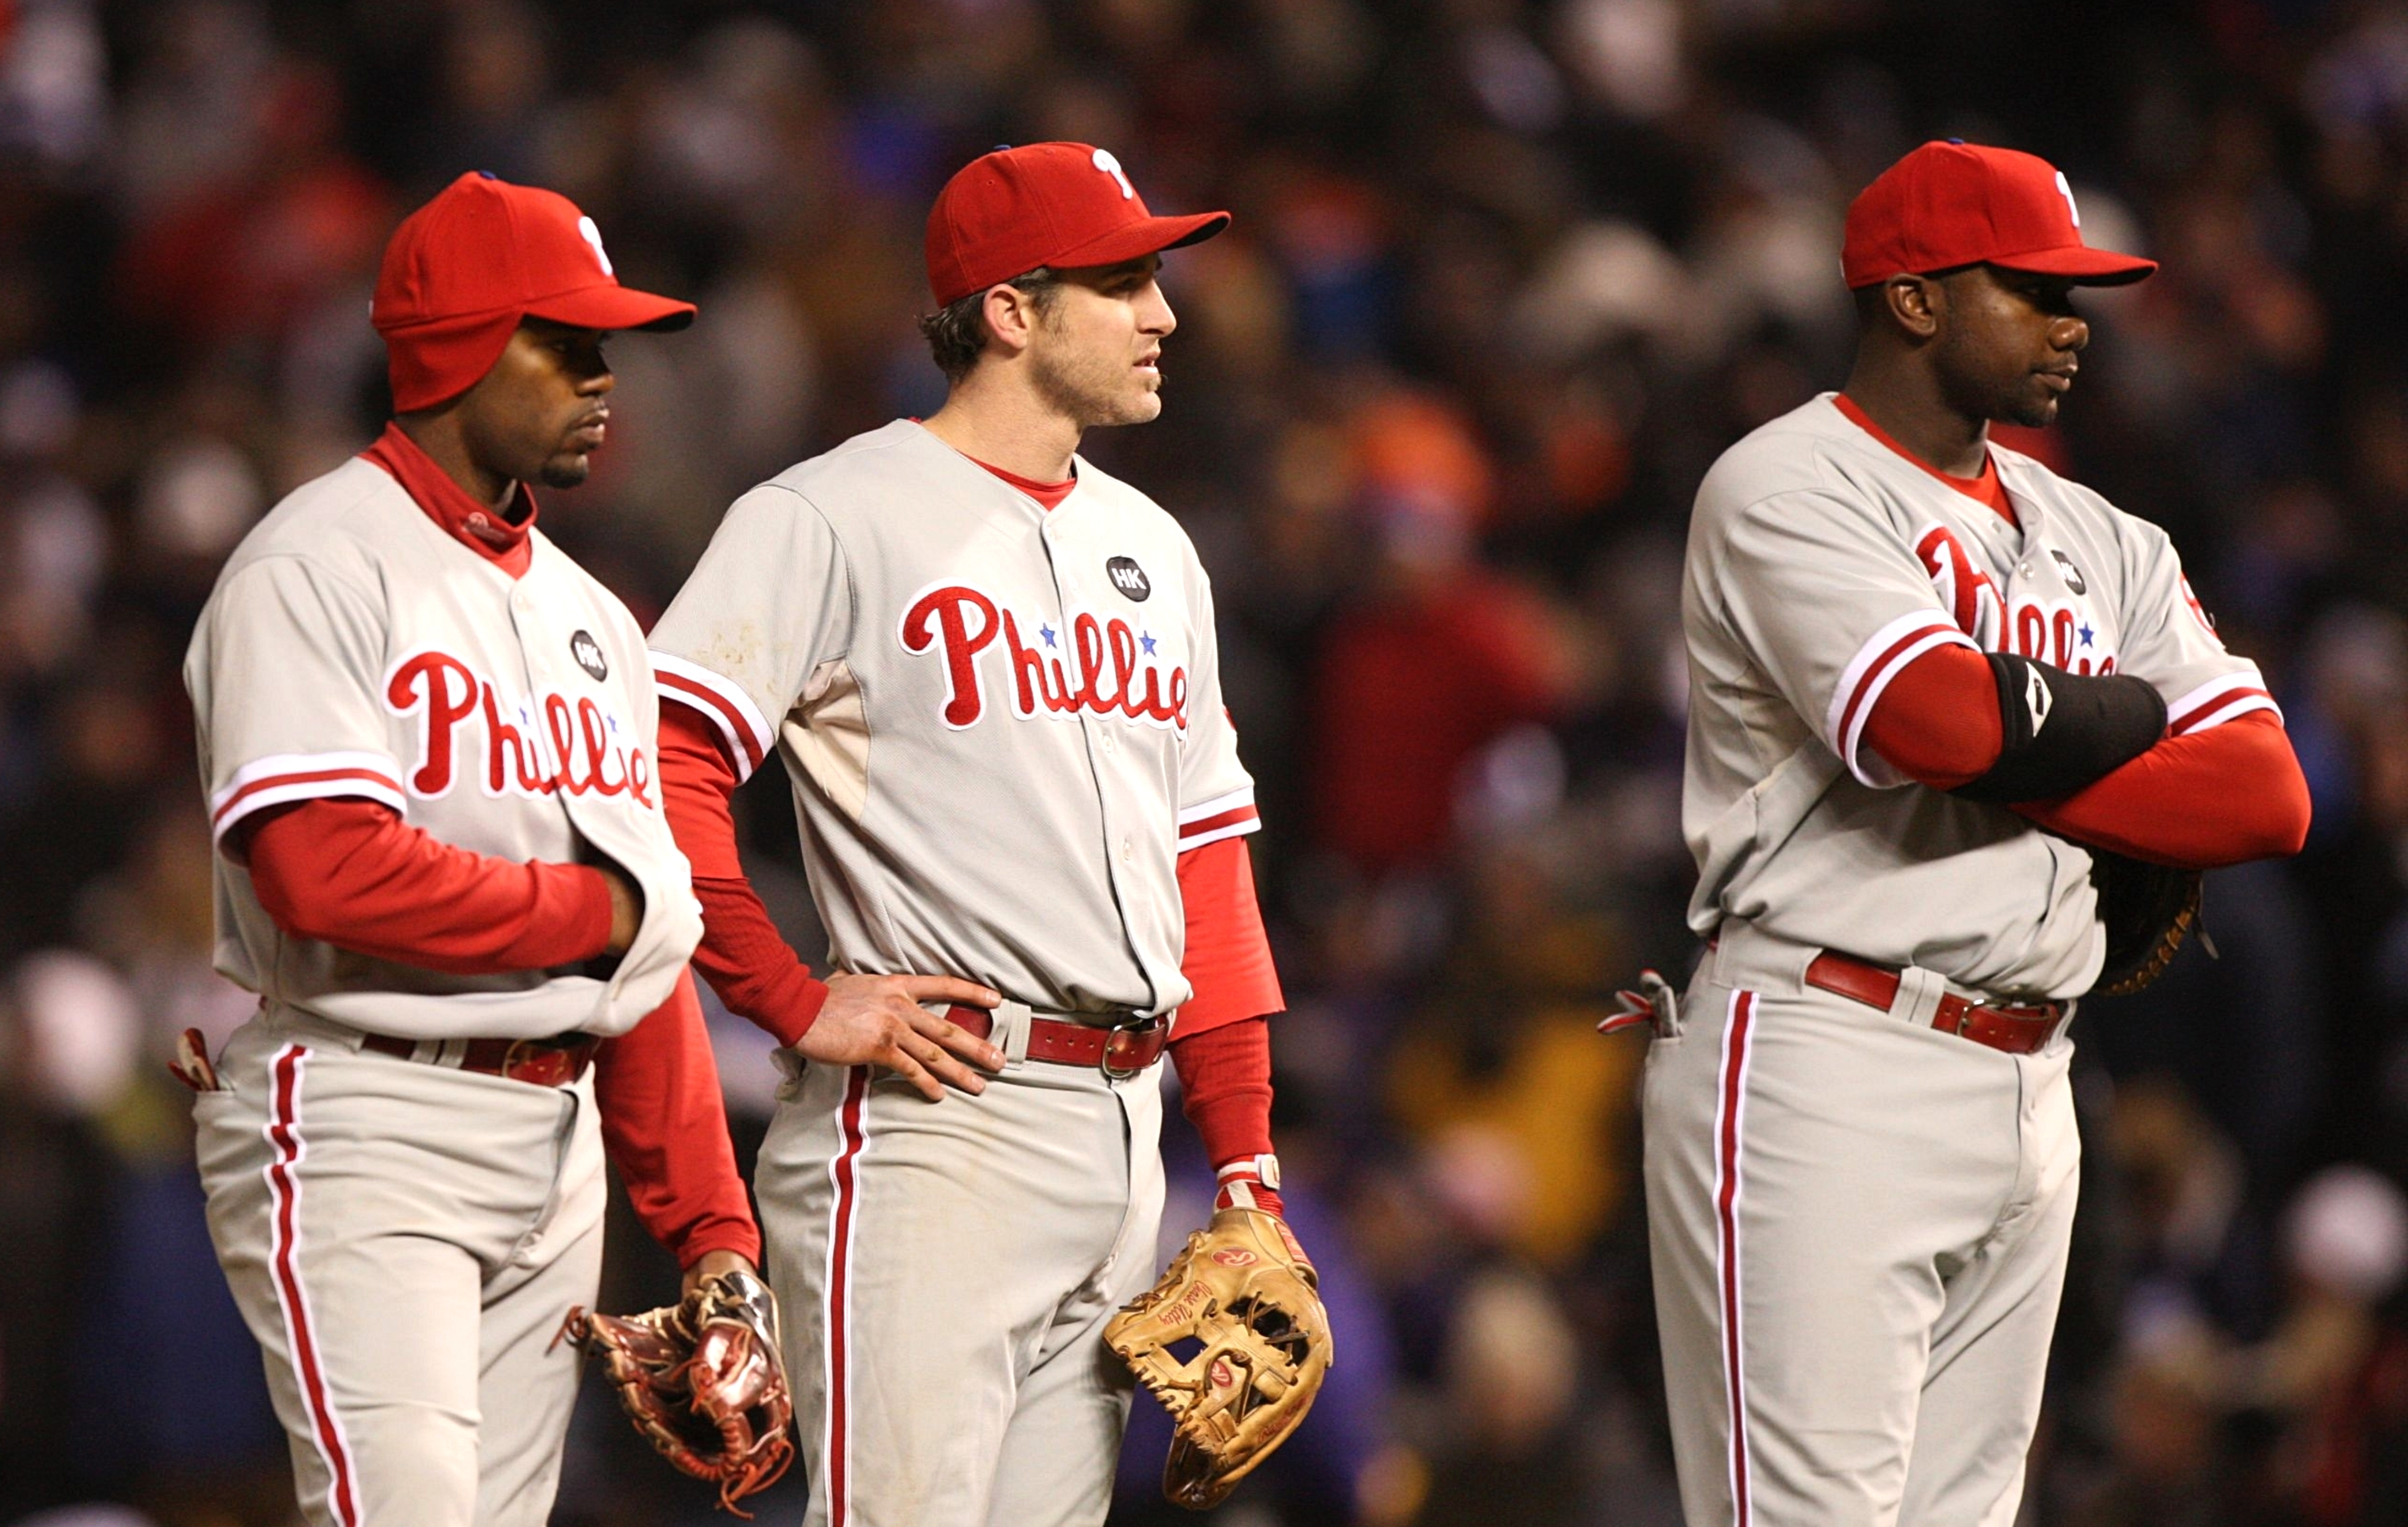 DENVER - OCTOBER 11:  (L-R) Jimmy Rollins #11, Chase Utley #26 and Ryan Howard #6 of the Philadelphia Phillies wait for a pitching change after an injury to Scott Eyre (not pictured) against the Colorado Rockies in Game Three of the NLDS during the 2009 M